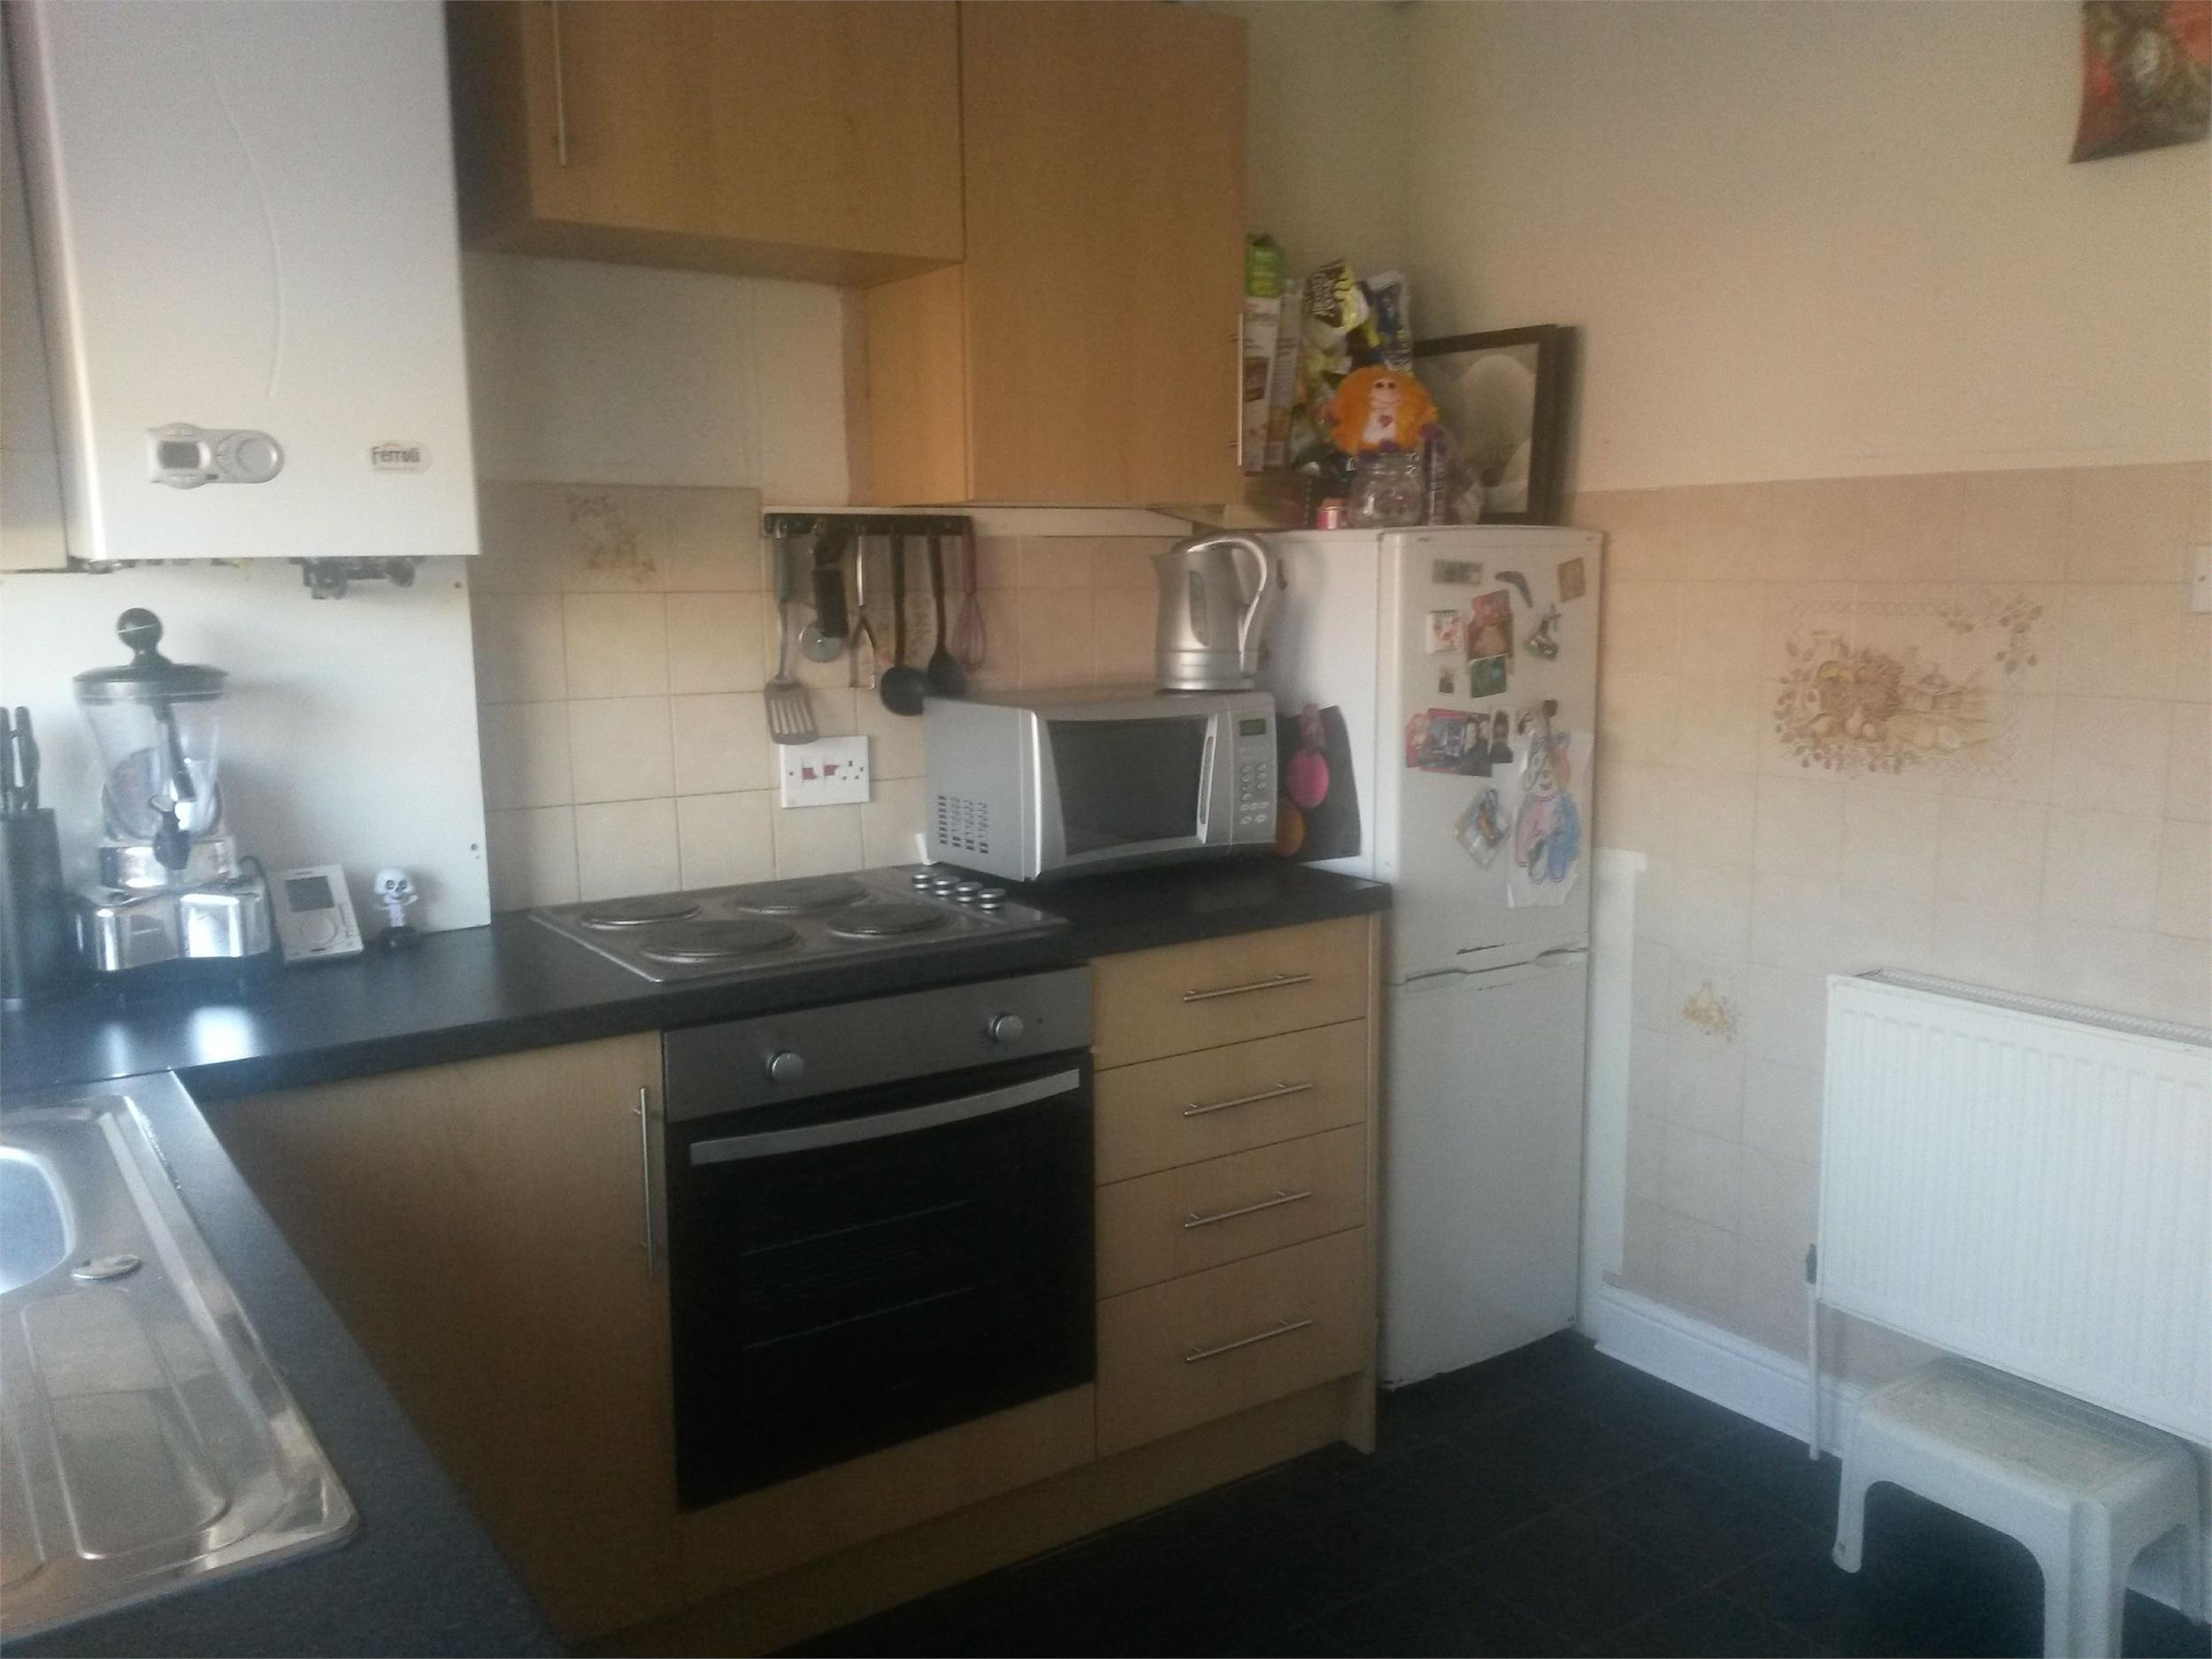 Whitegates bramley 2 bedroom semi detached house for sale for Perfect kitchen bramley